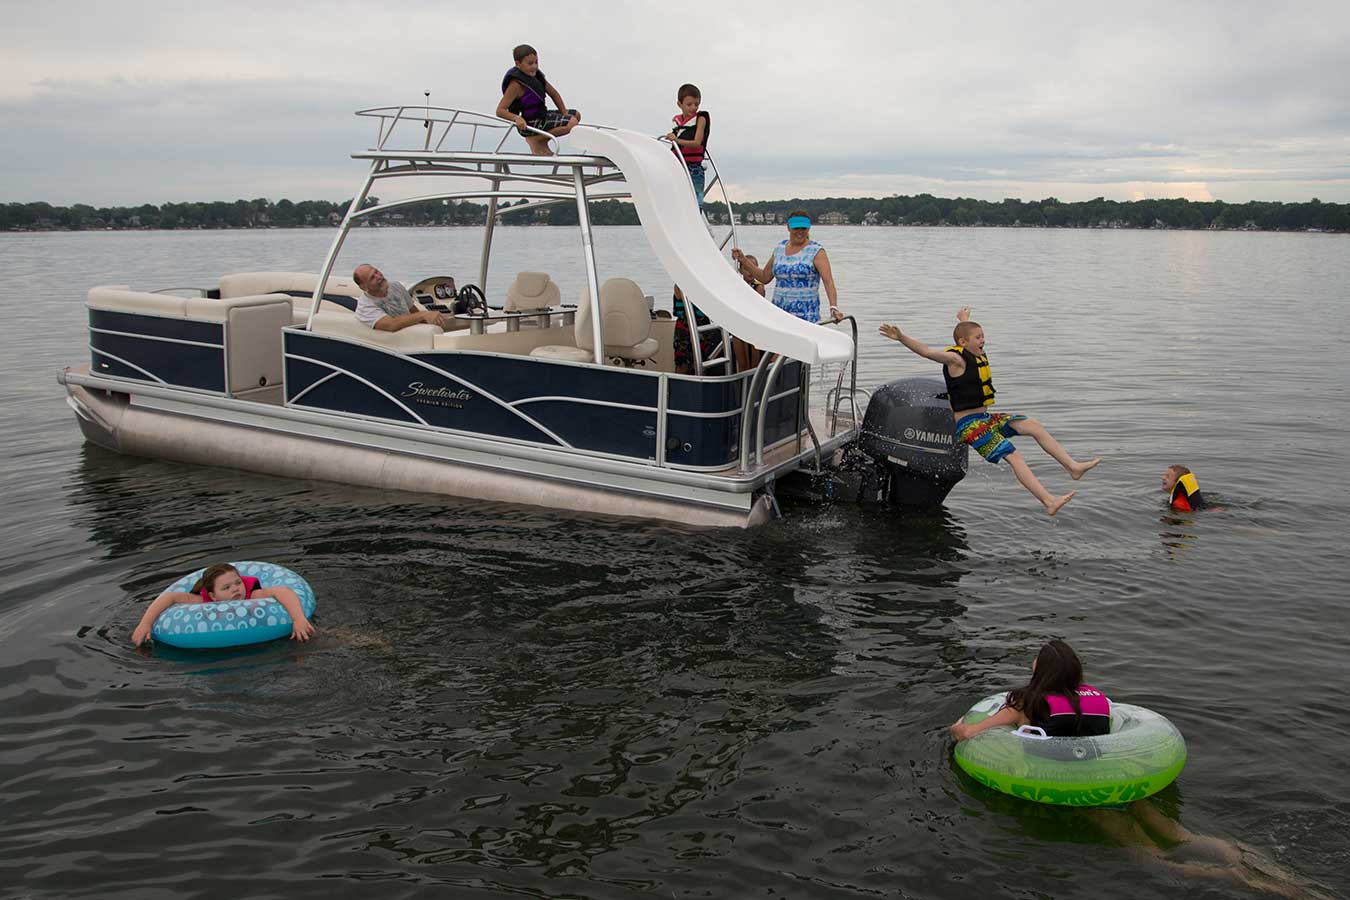 Bass lake ca boat rentals : Pizza moline illinois